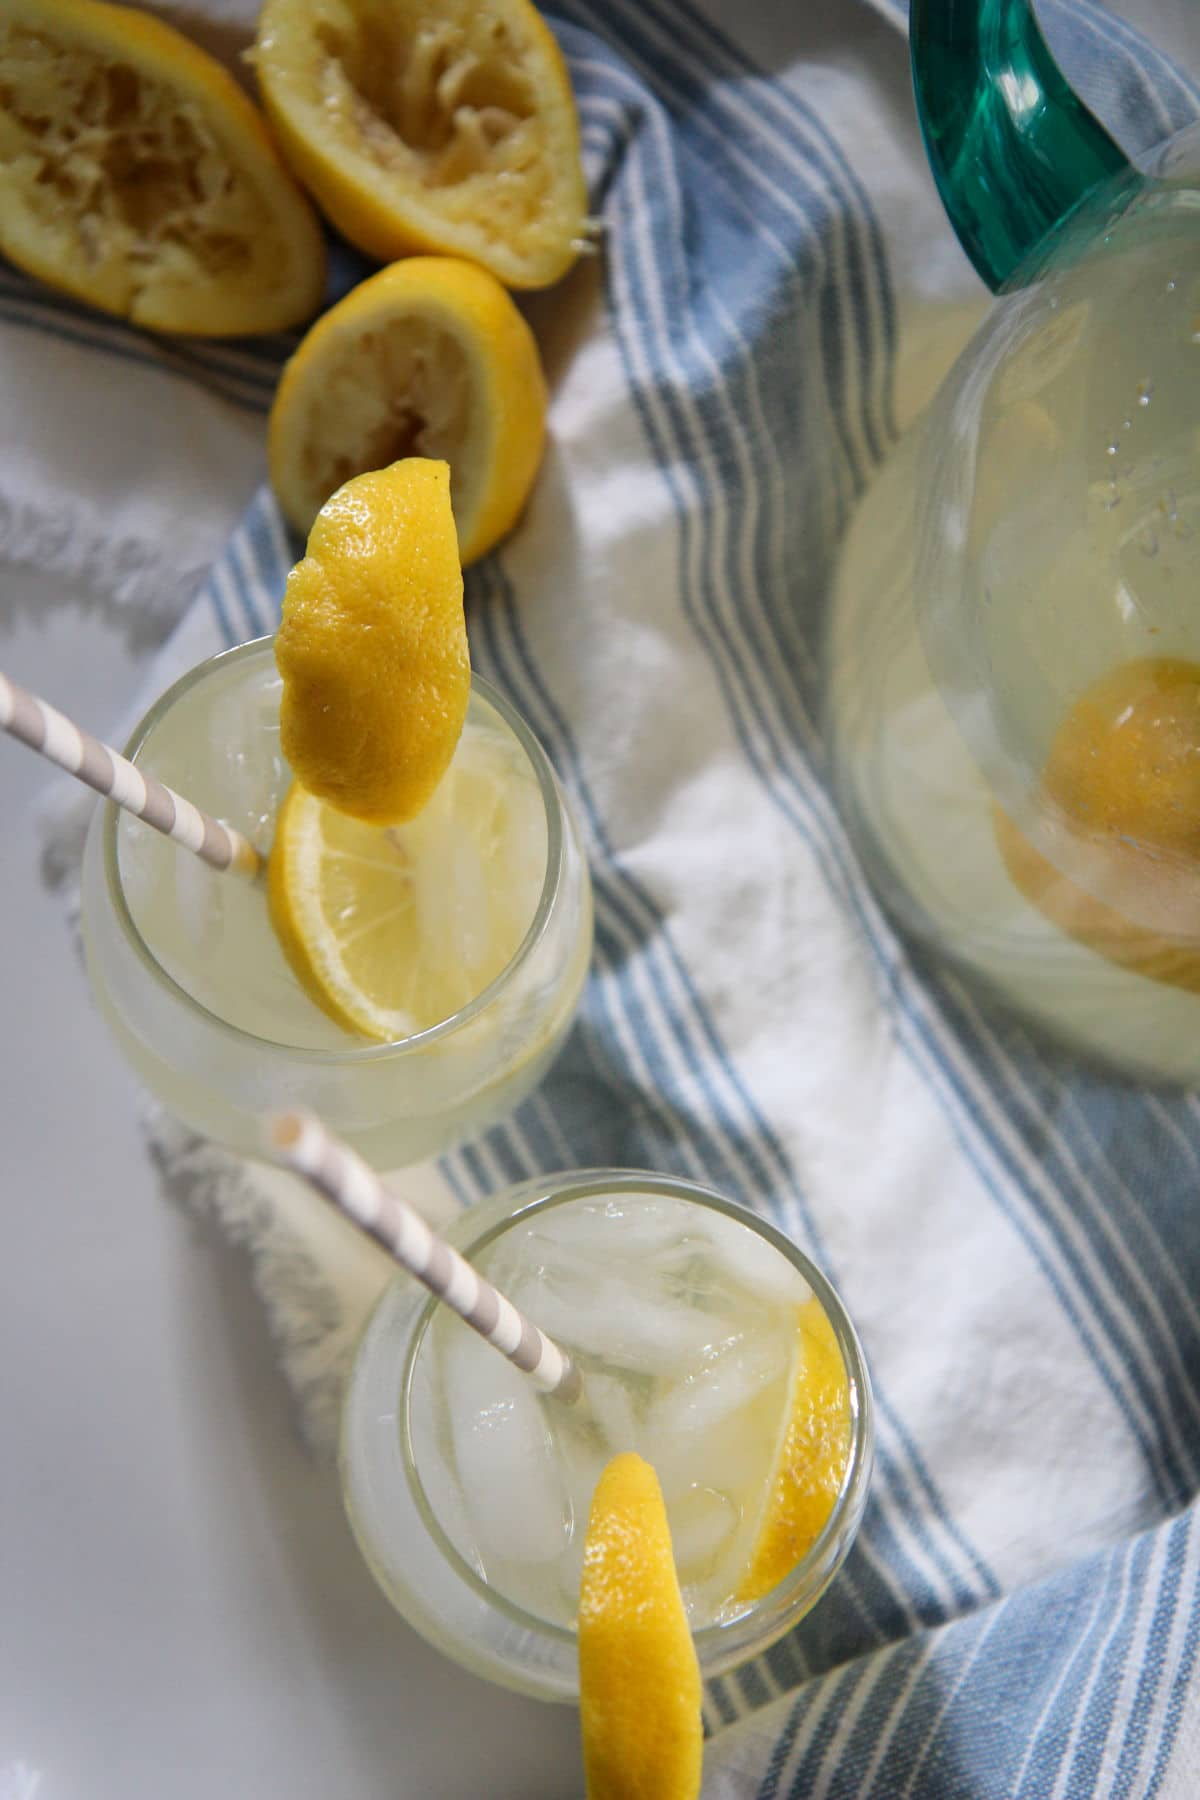 2 glasses of lemonade with straws on a white table with a blue table cloth